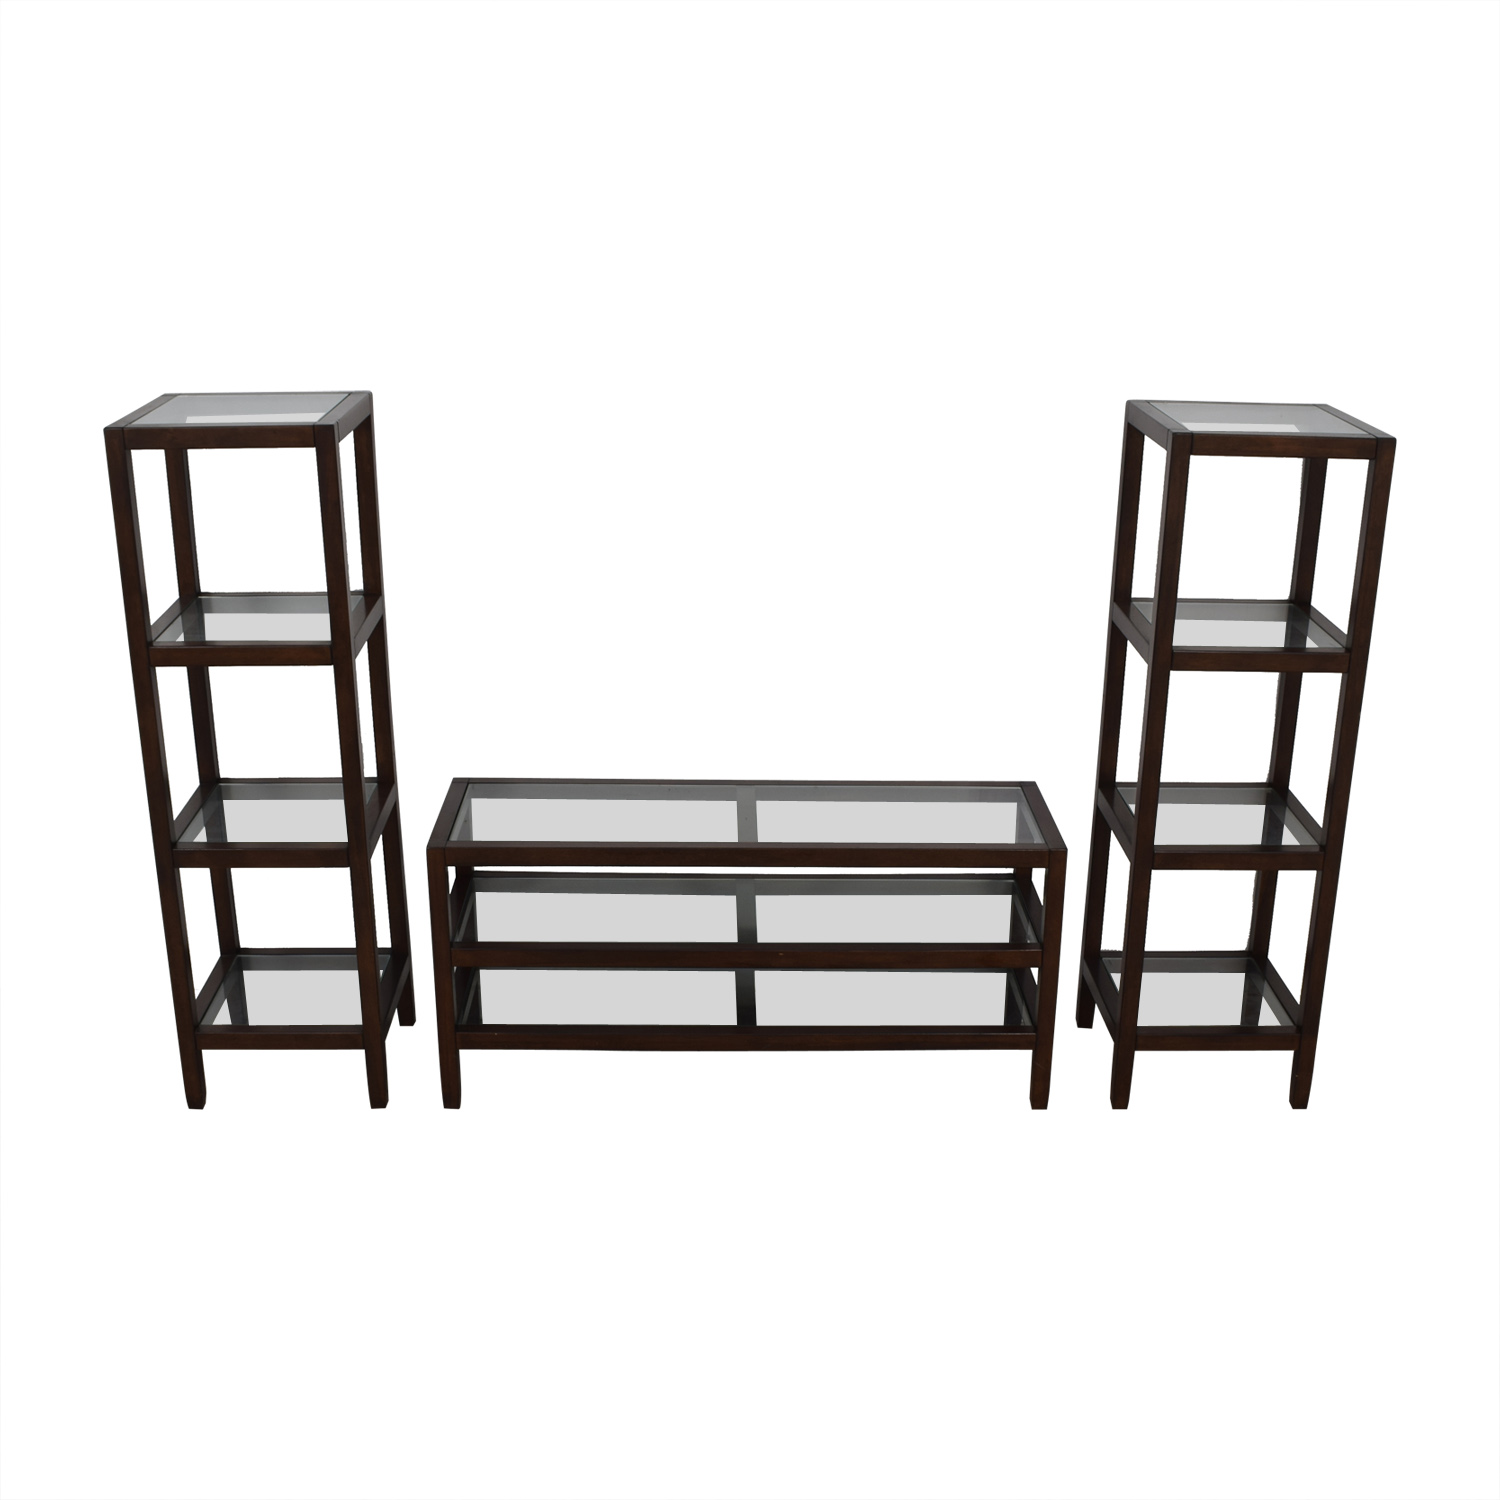 Pottery Barn Pottery Barn Gayle Media Center price